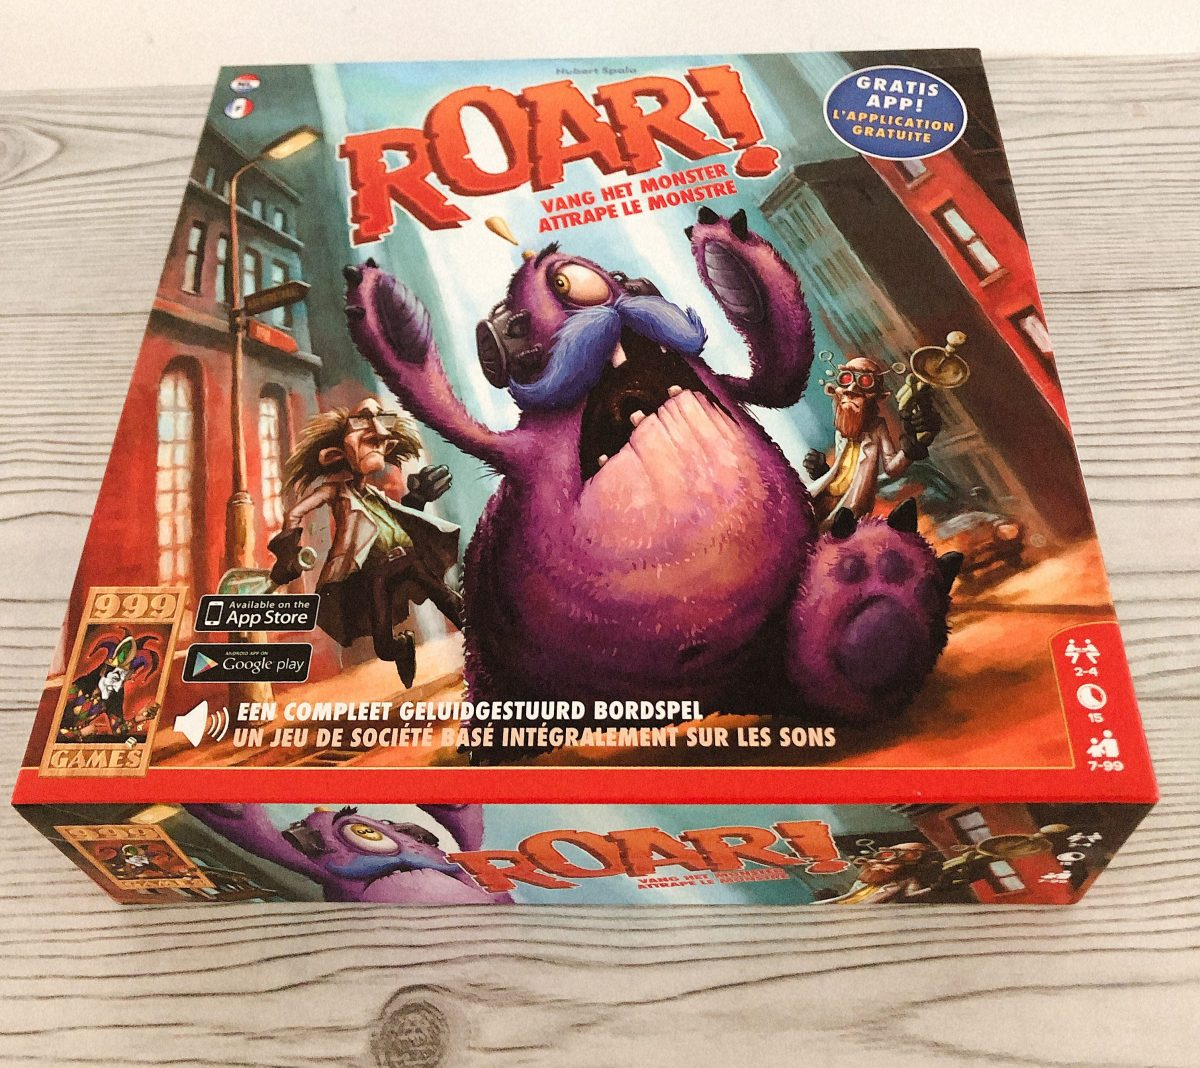 Review: Roar Bordspel